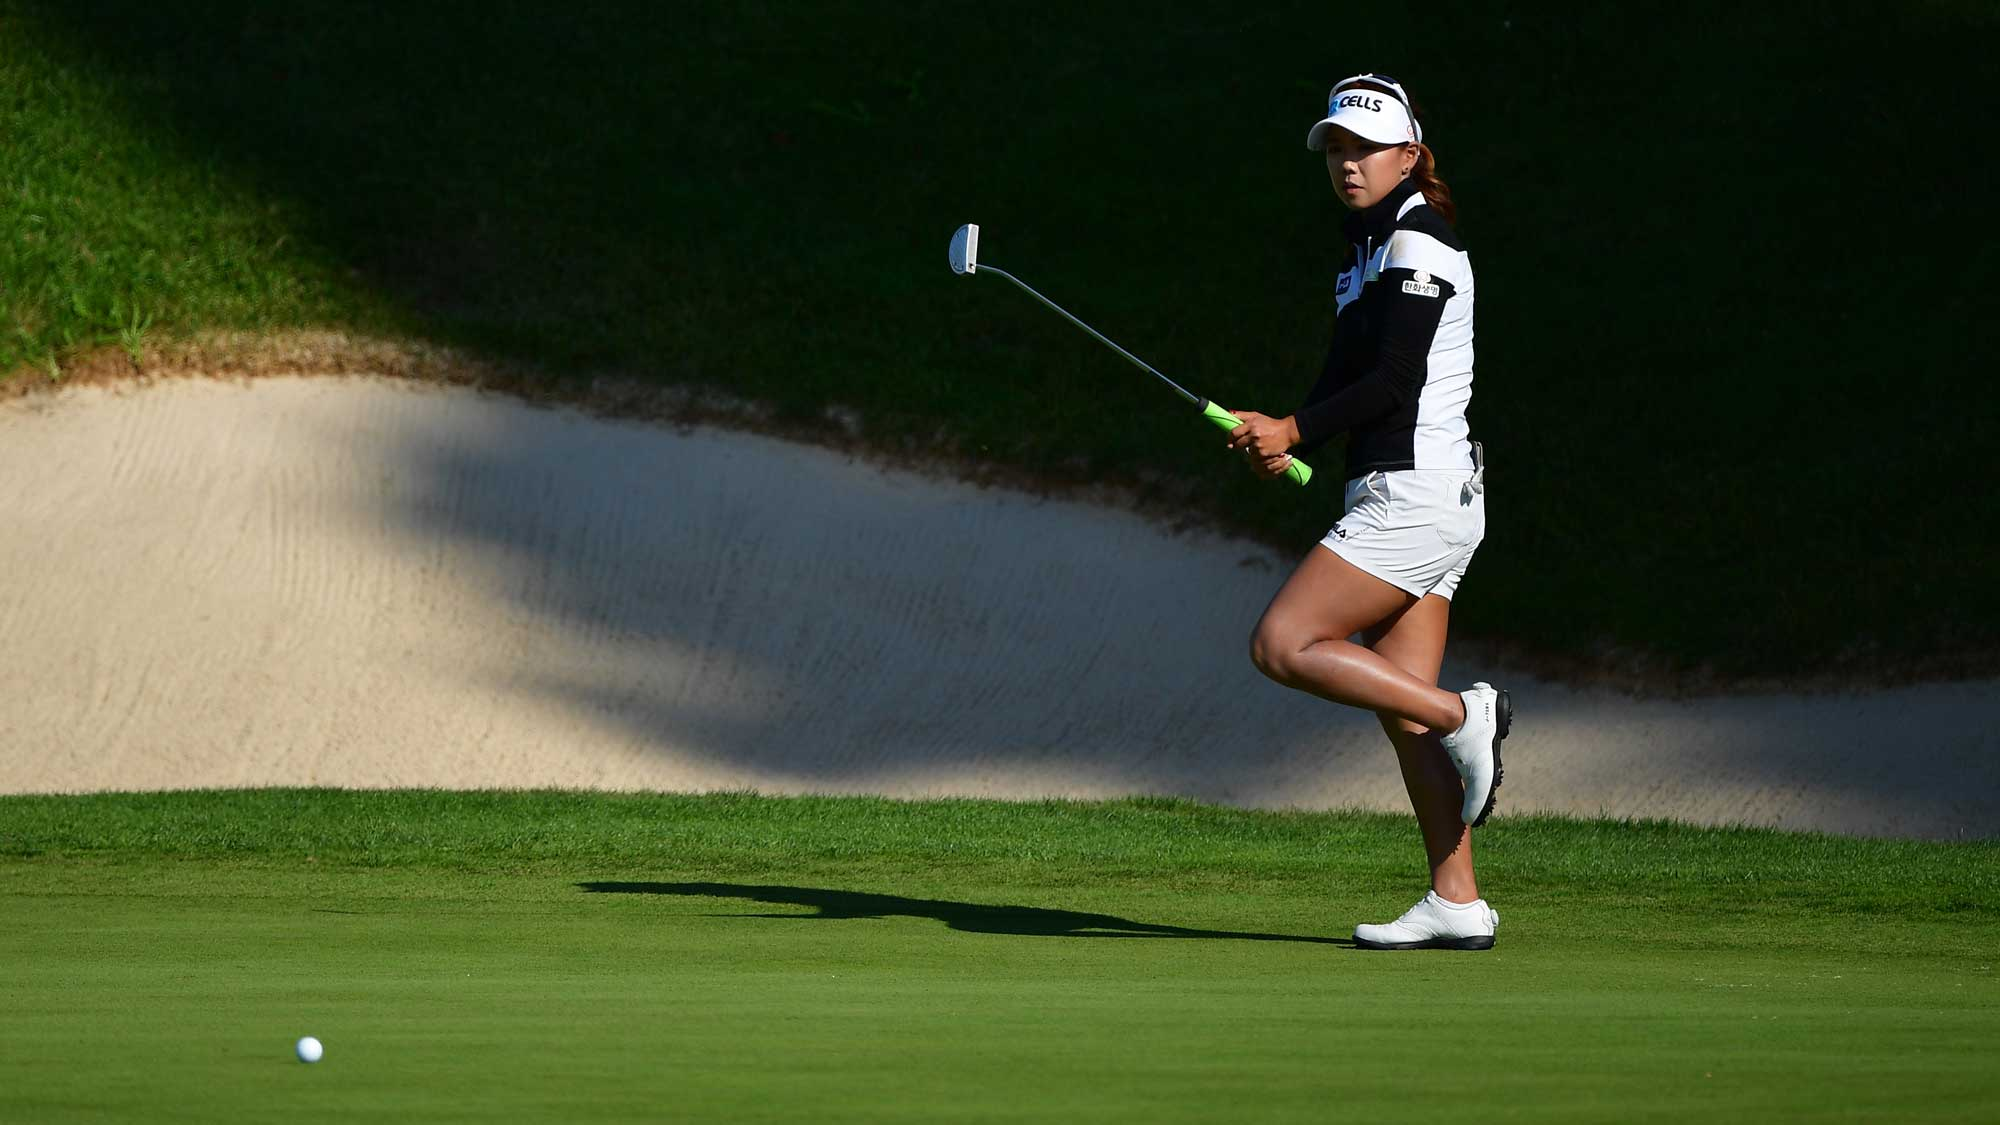 Jenny Shin of Korea reacts to a putt during the third round of The Evian Championship